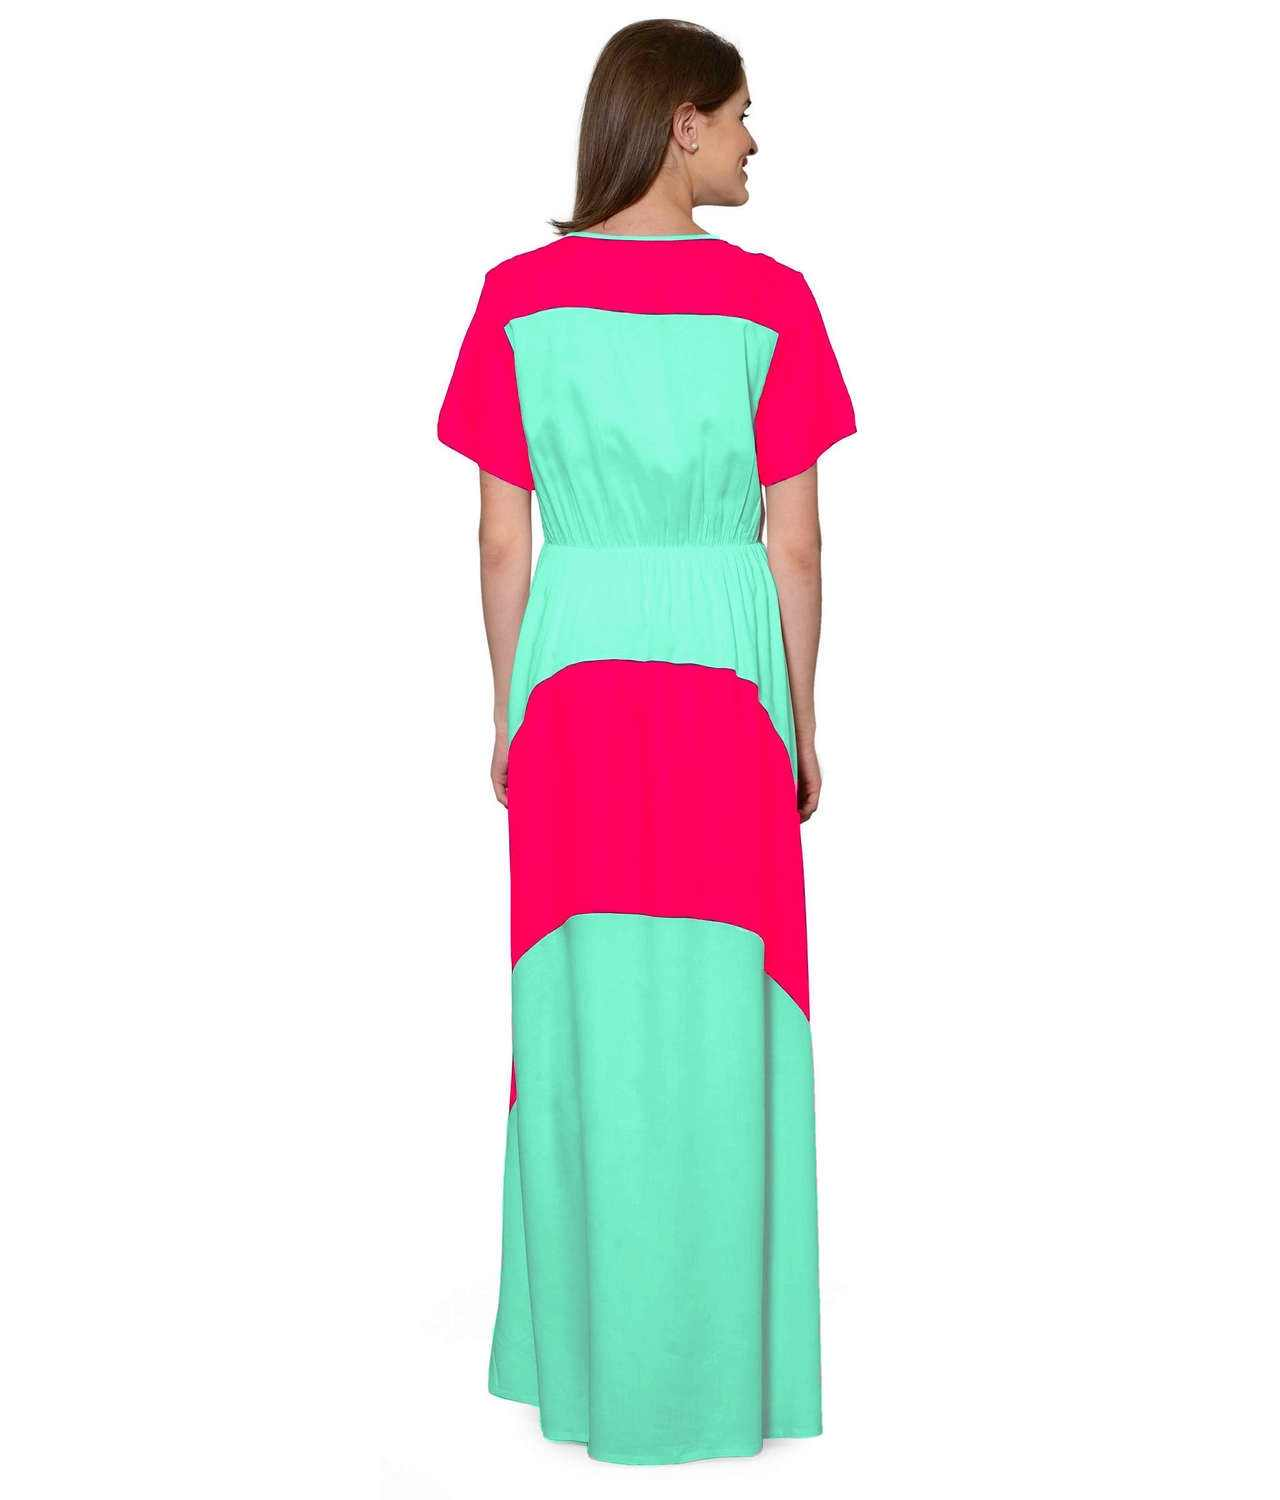 Color Block Slim Fit Maxi Dress Gown in Fuchsia:Teal Green